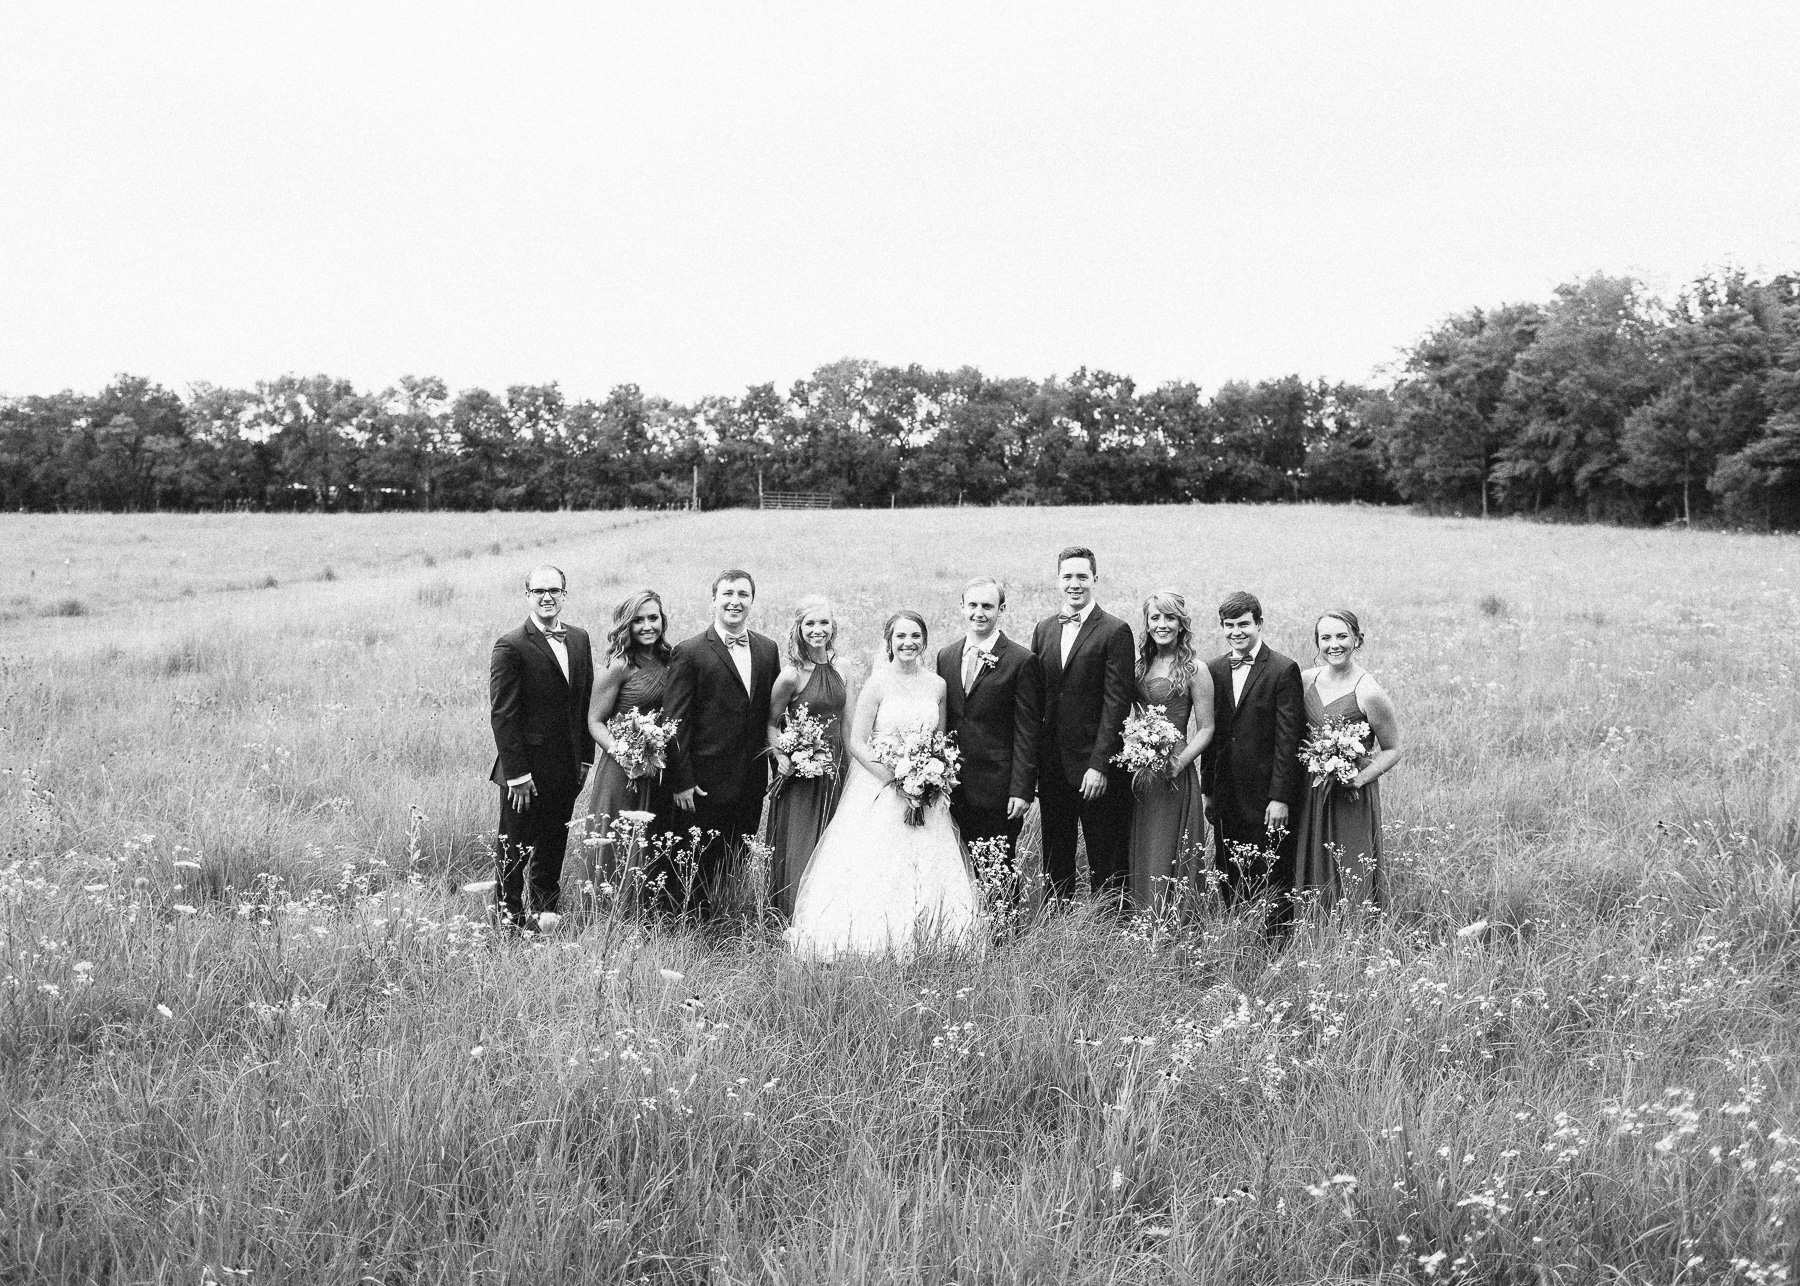 bridesmaids and groomsmen with bride and groom portrait